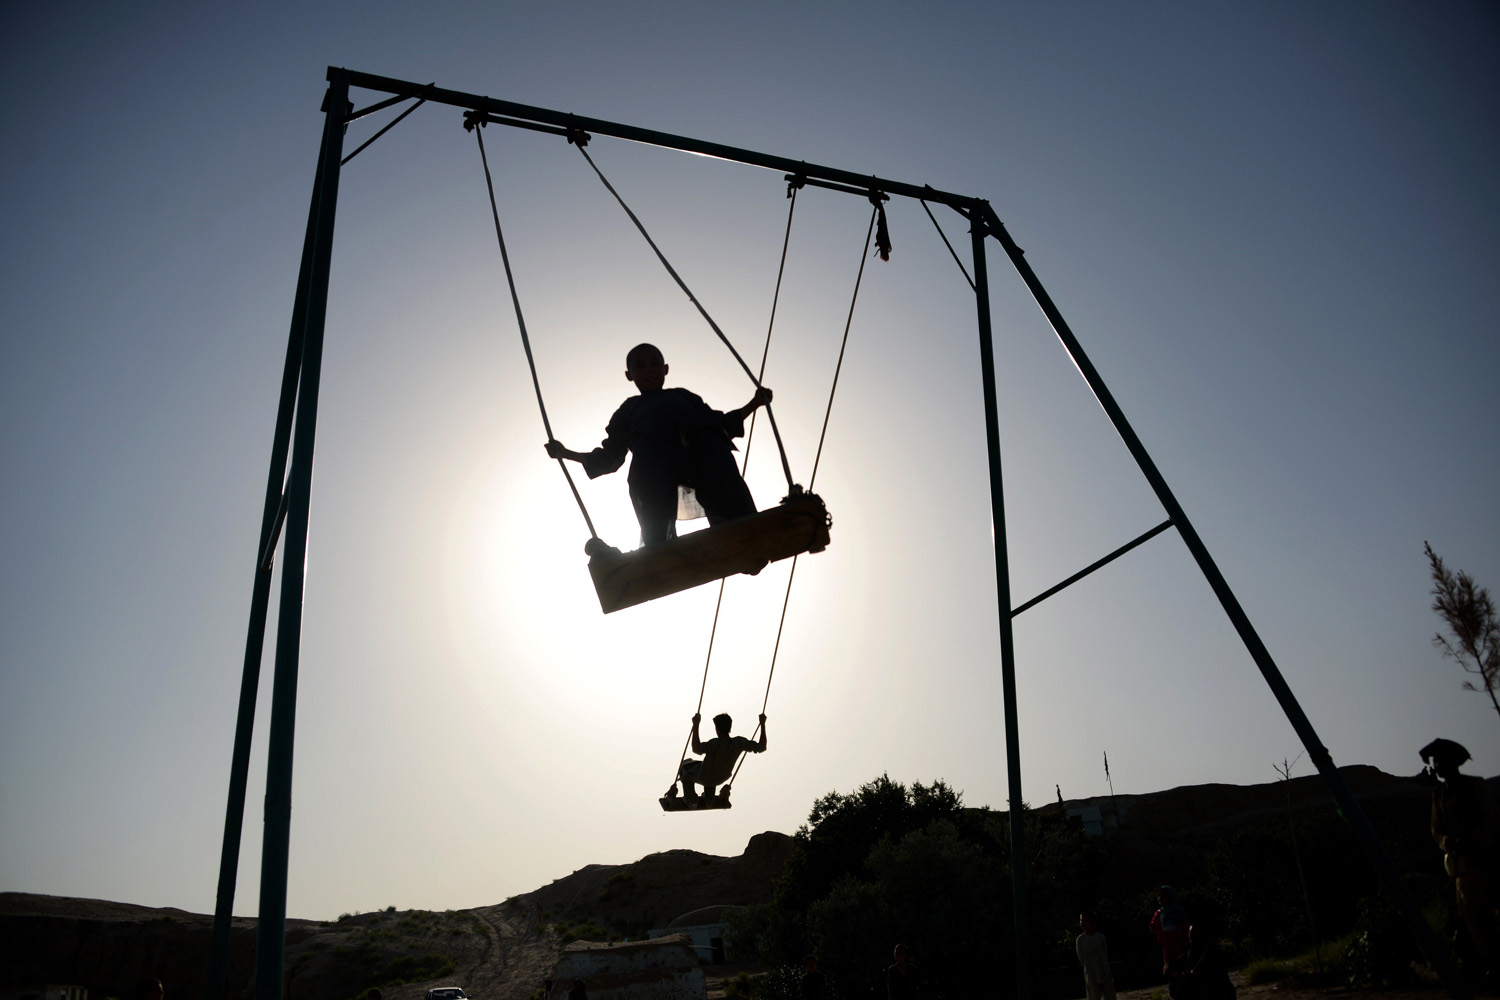 Afghan youth play on swings on the outskirts of Mazar-i-sharif on May 13, 2014.